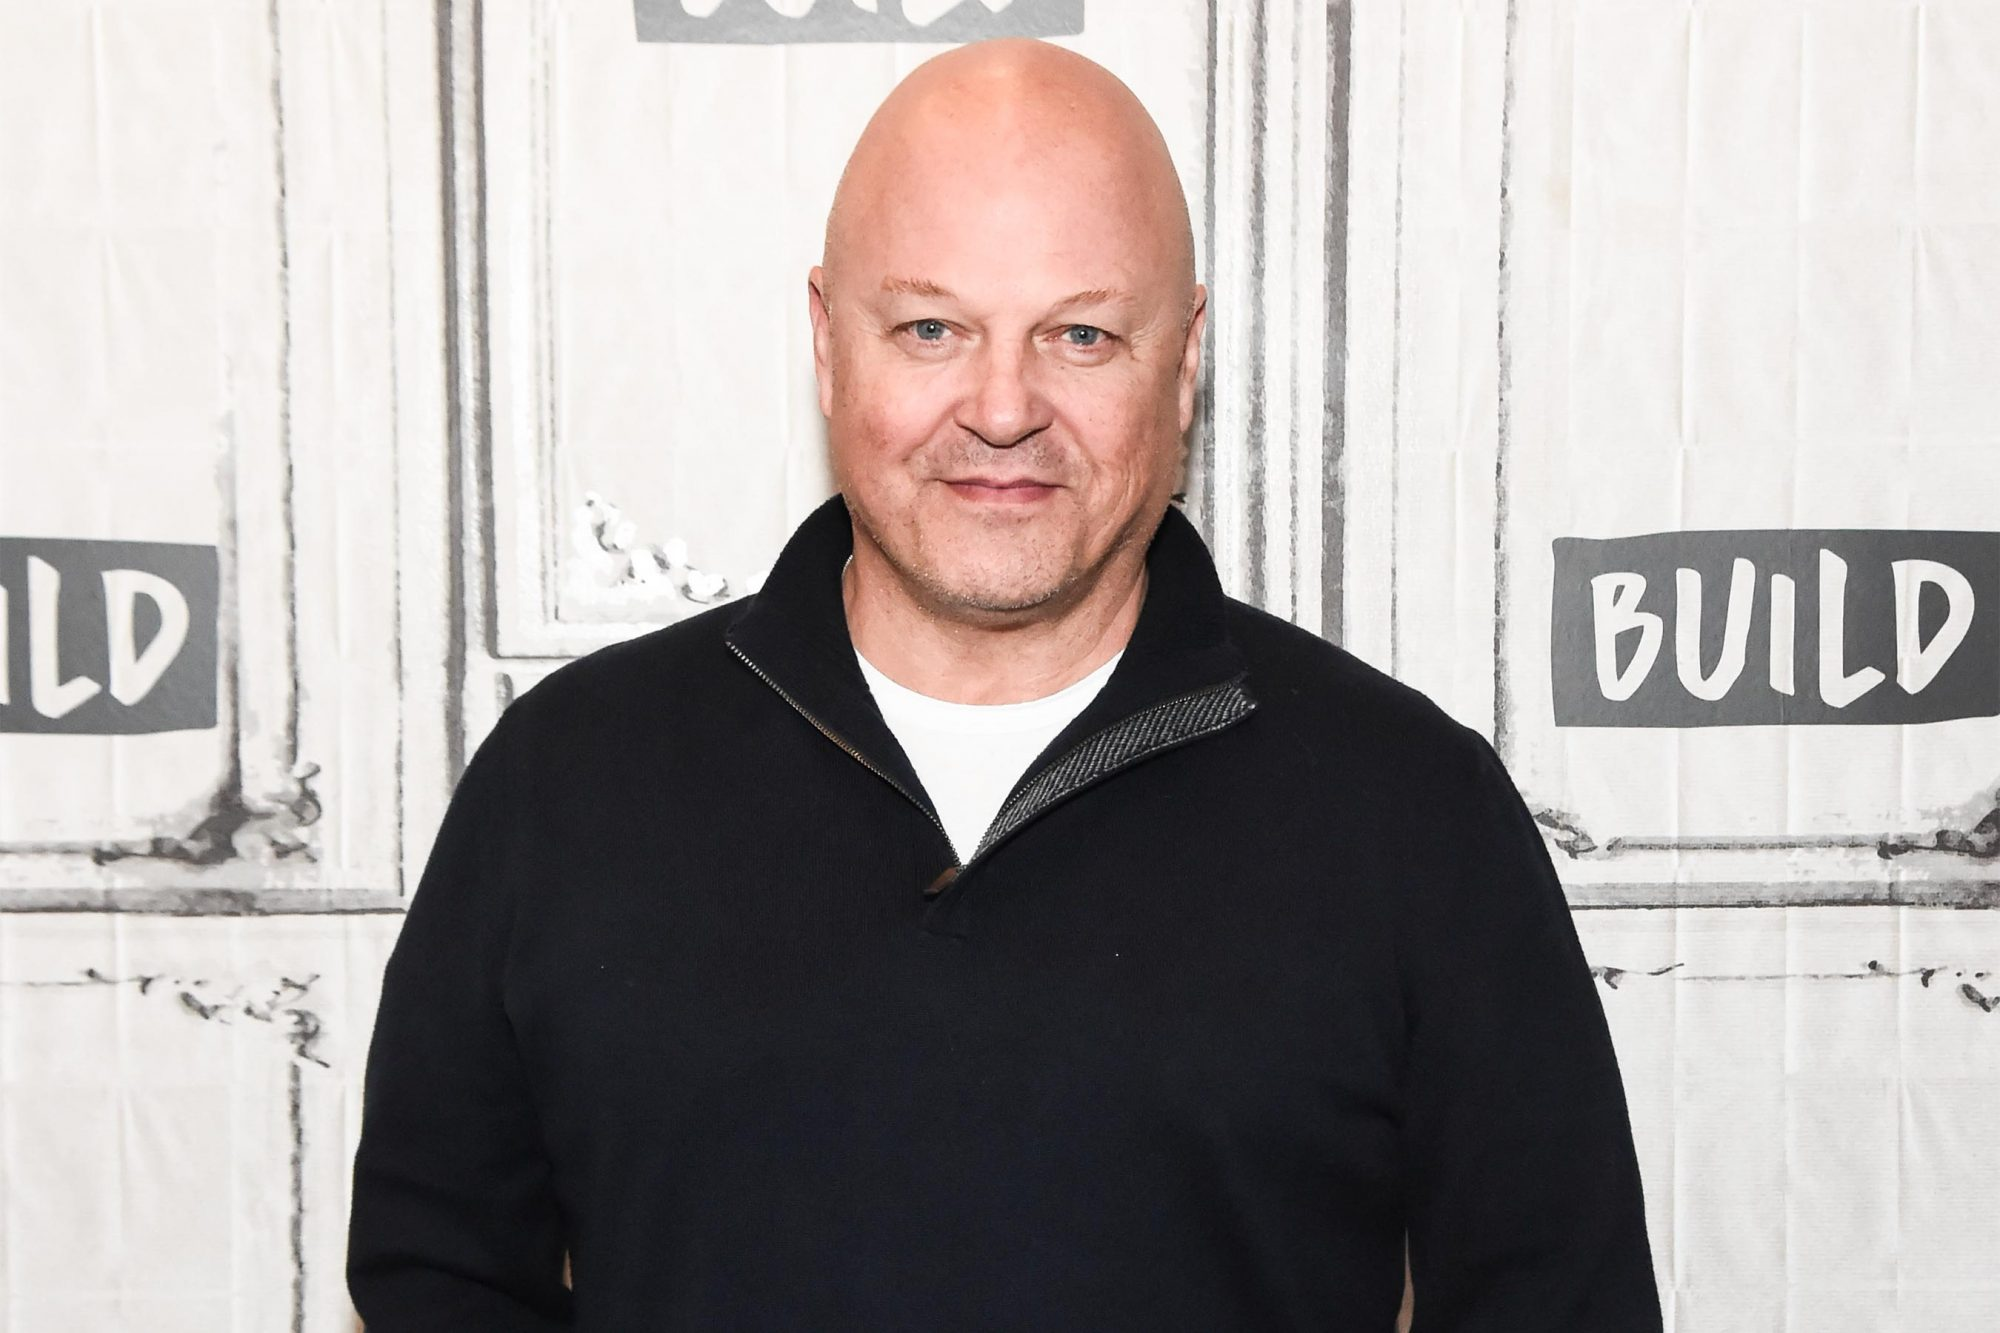 NEW YORK, NY - OCTOBER 24: Michael Chiklis attends the Build Series to discuss the film '1985' at Build Studio on October 24, 2018 in New York City. (Photo by Daniel Zuchnik/Getty Images)